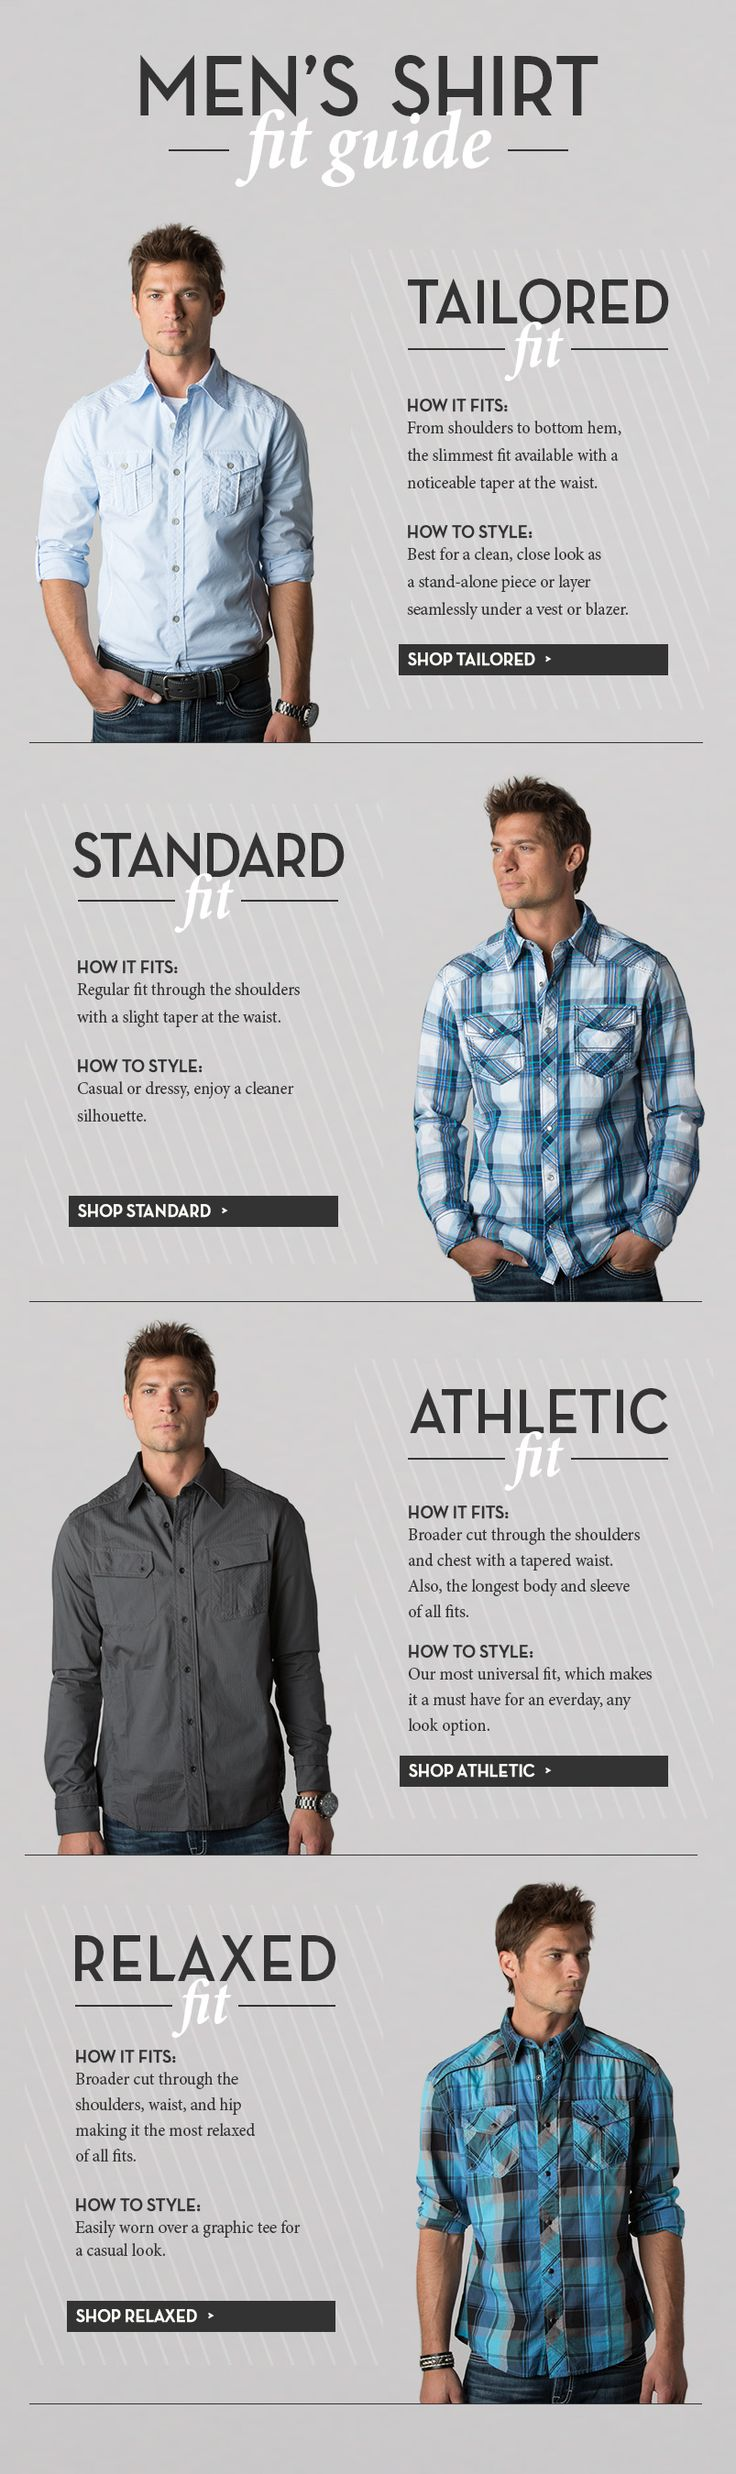 Men's shirt fit guide www.buckle.com